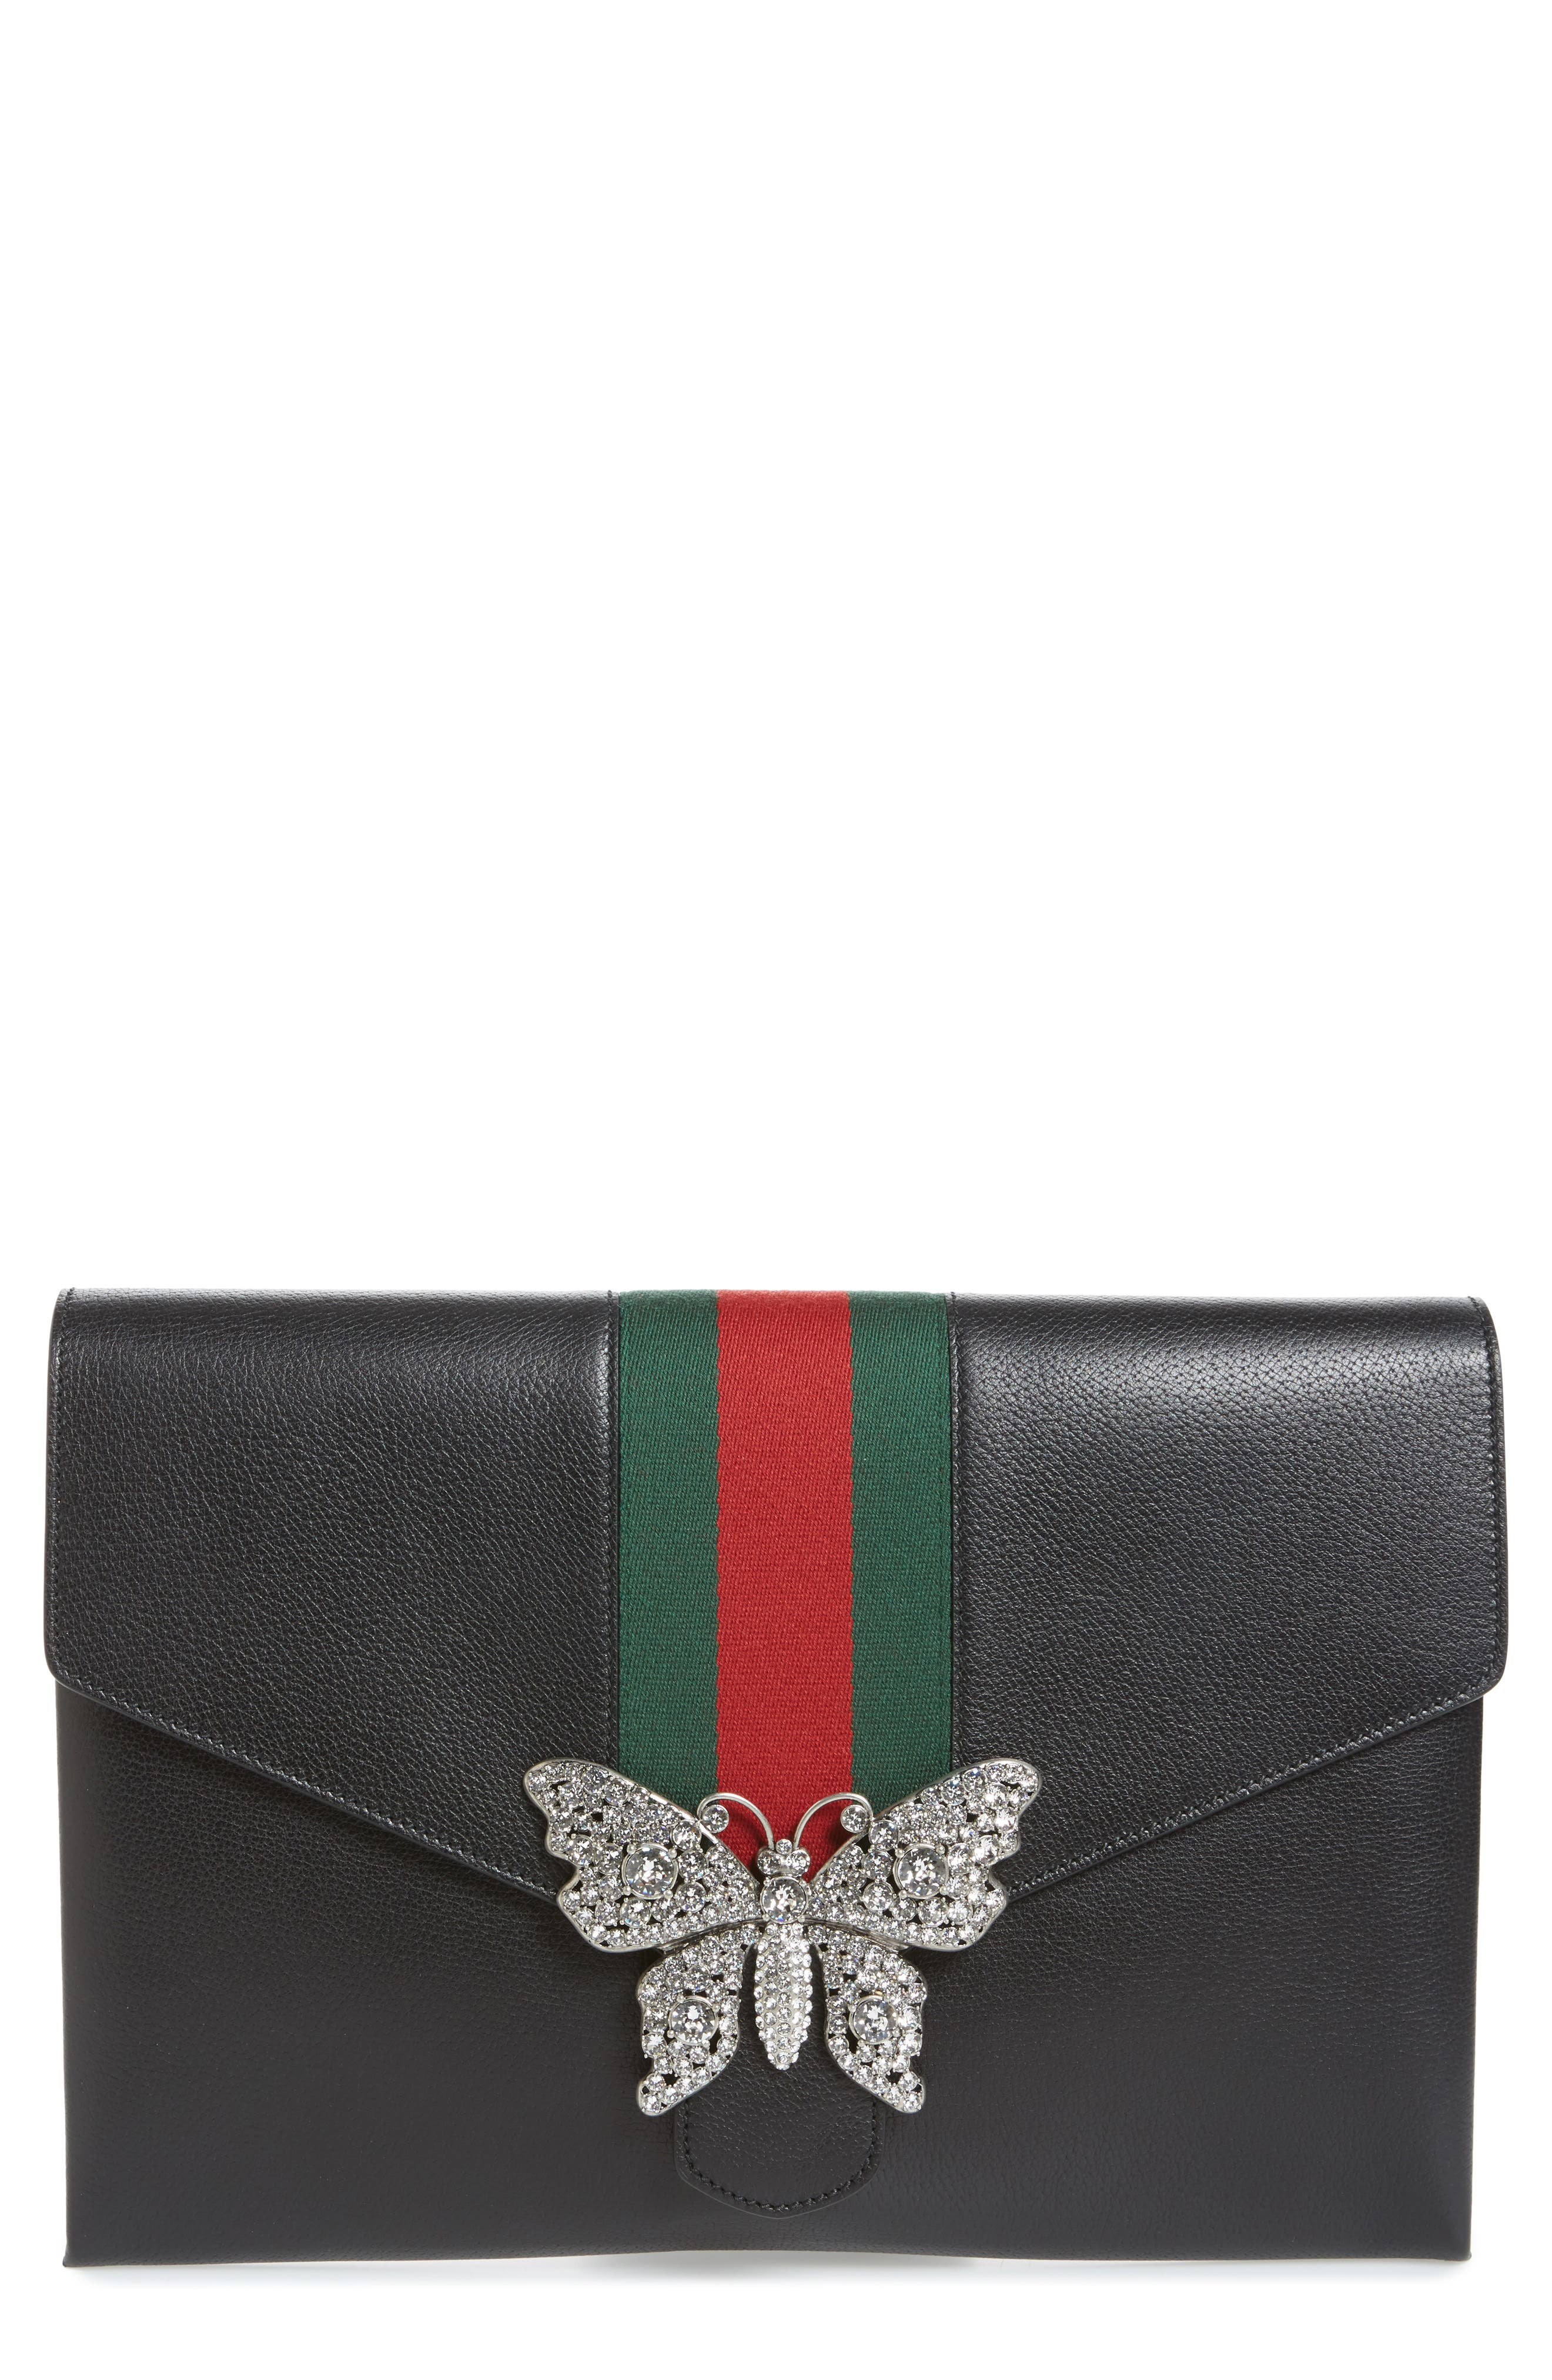 Main Image - Gucci Totem Crystal Embellished Butterfly Leather Clutch